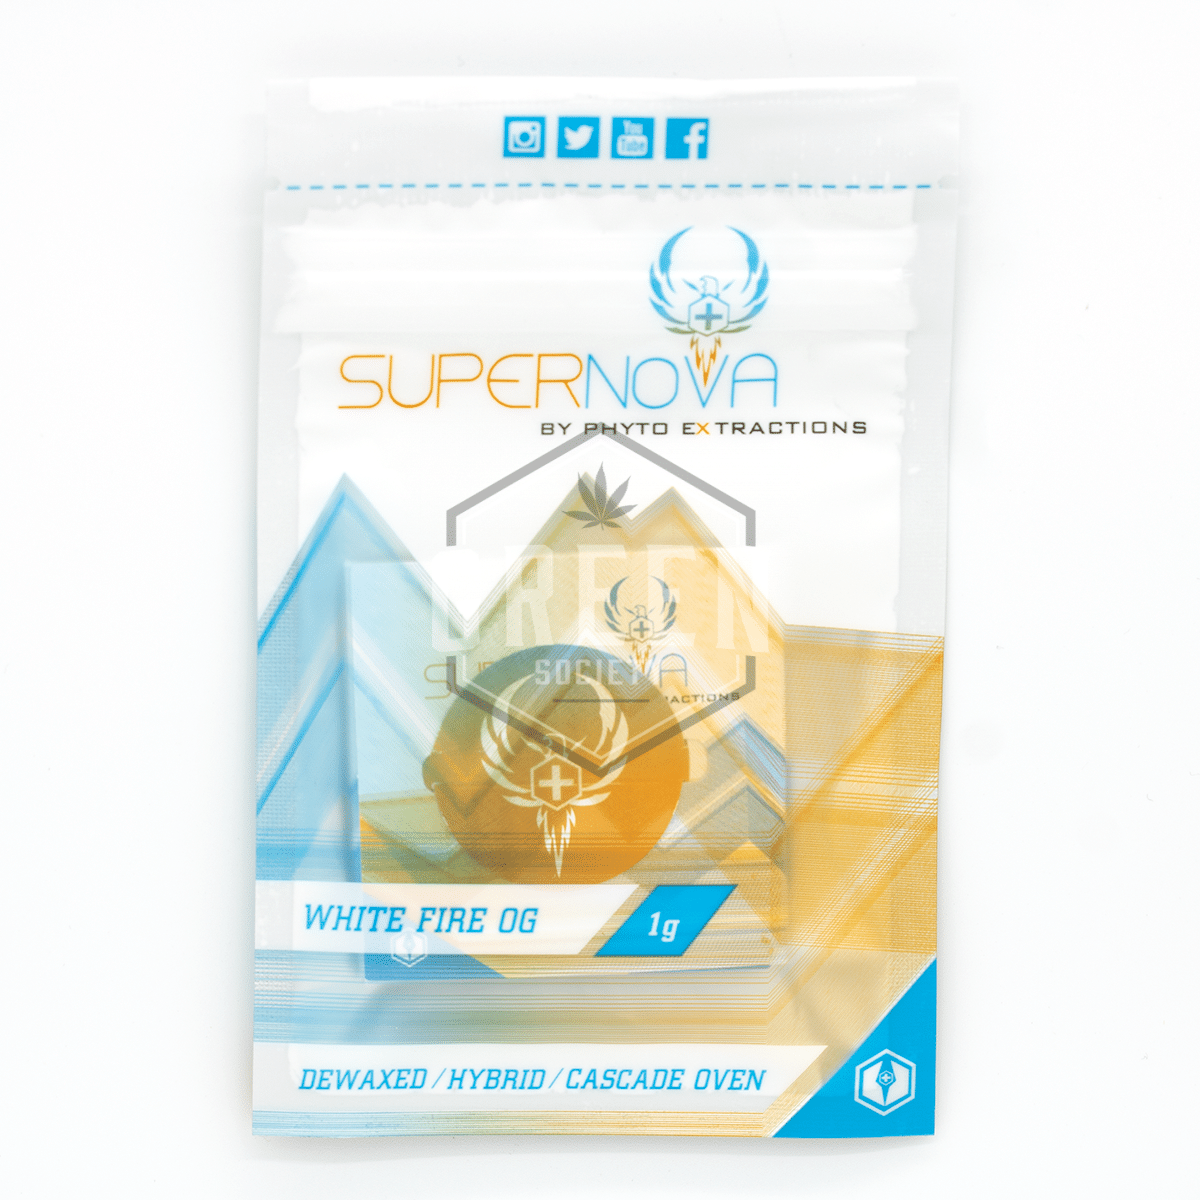 SUPERNOVA Phyto Extractions White Fire OG Shatter by Green Society - Image © 2018 Green Society. All Rights Reserved.